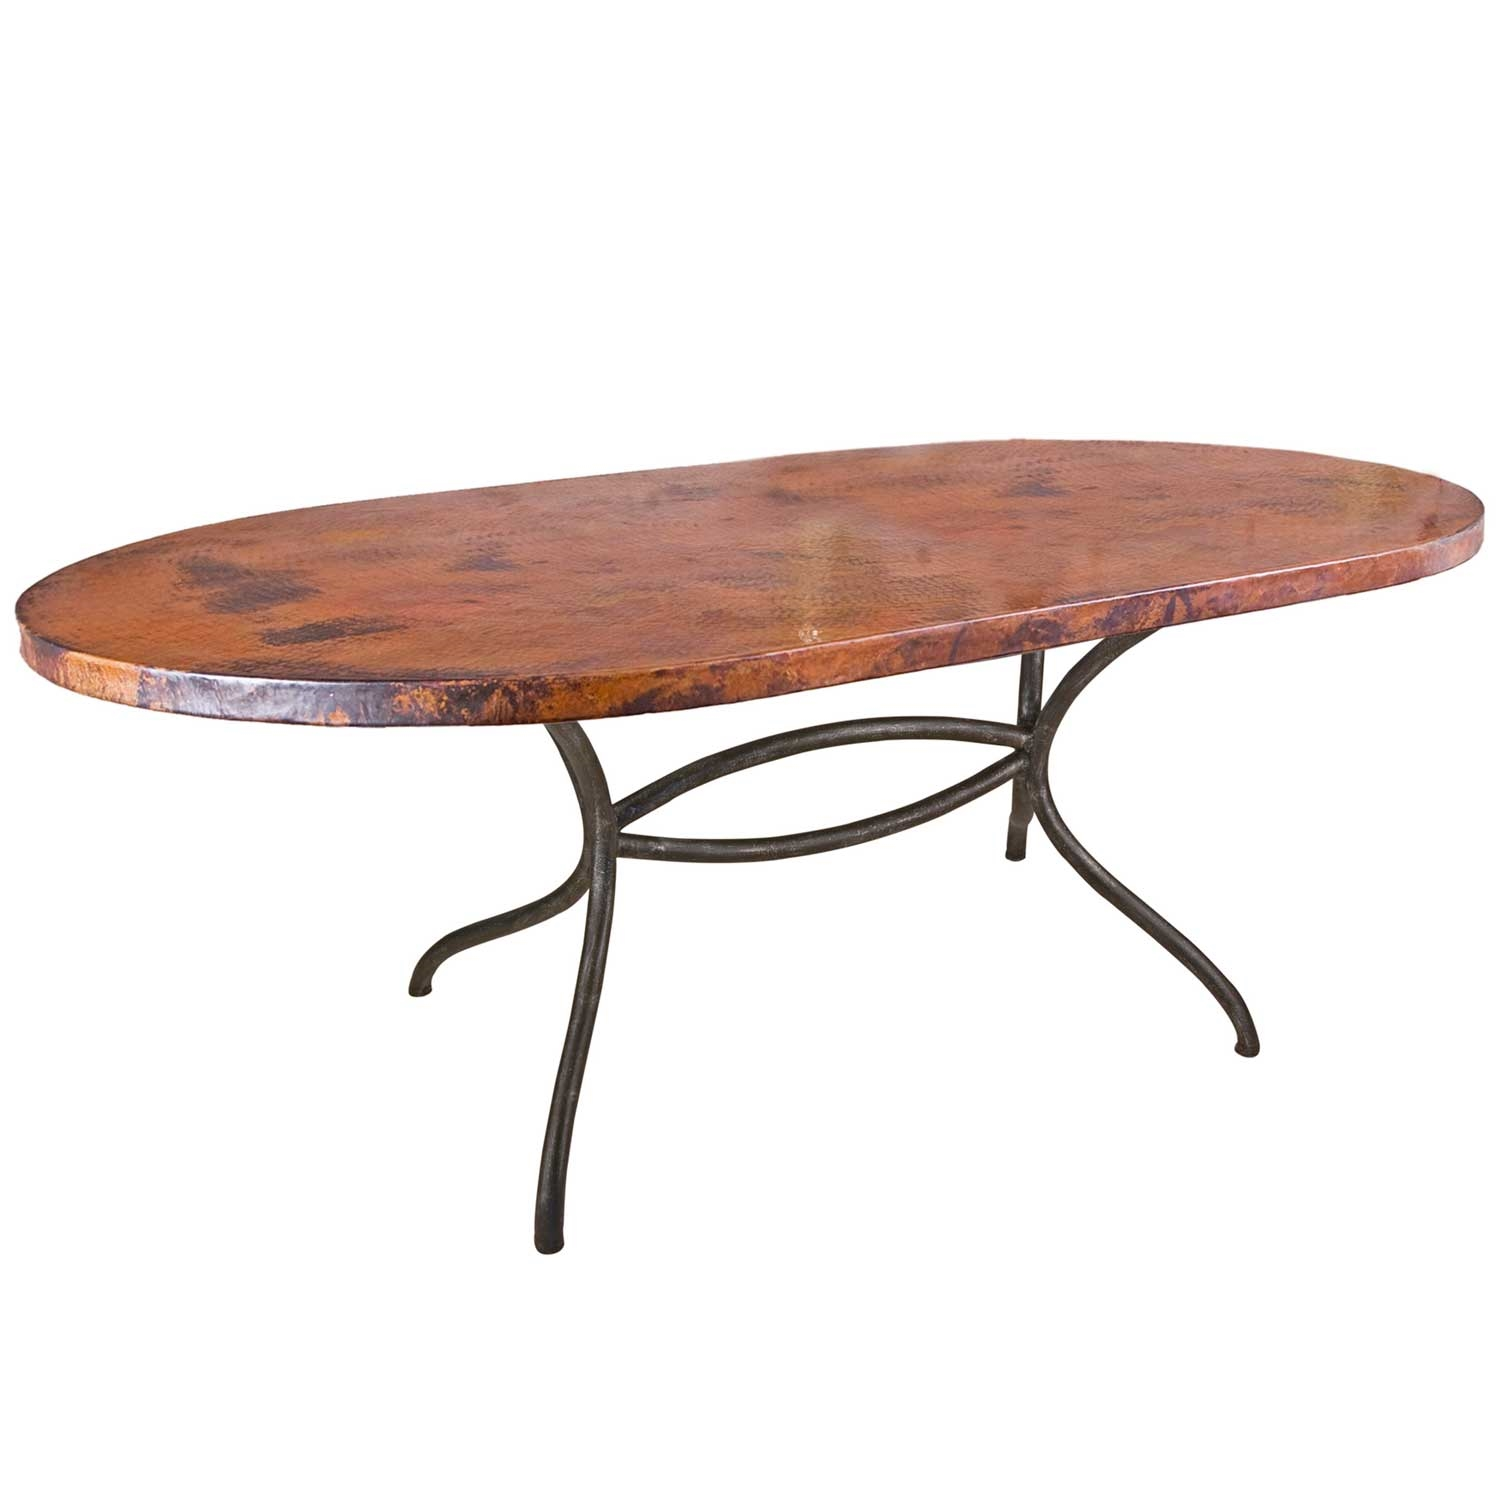 Italia Wrought Iron Oval Dining Table With 72 X 44 In